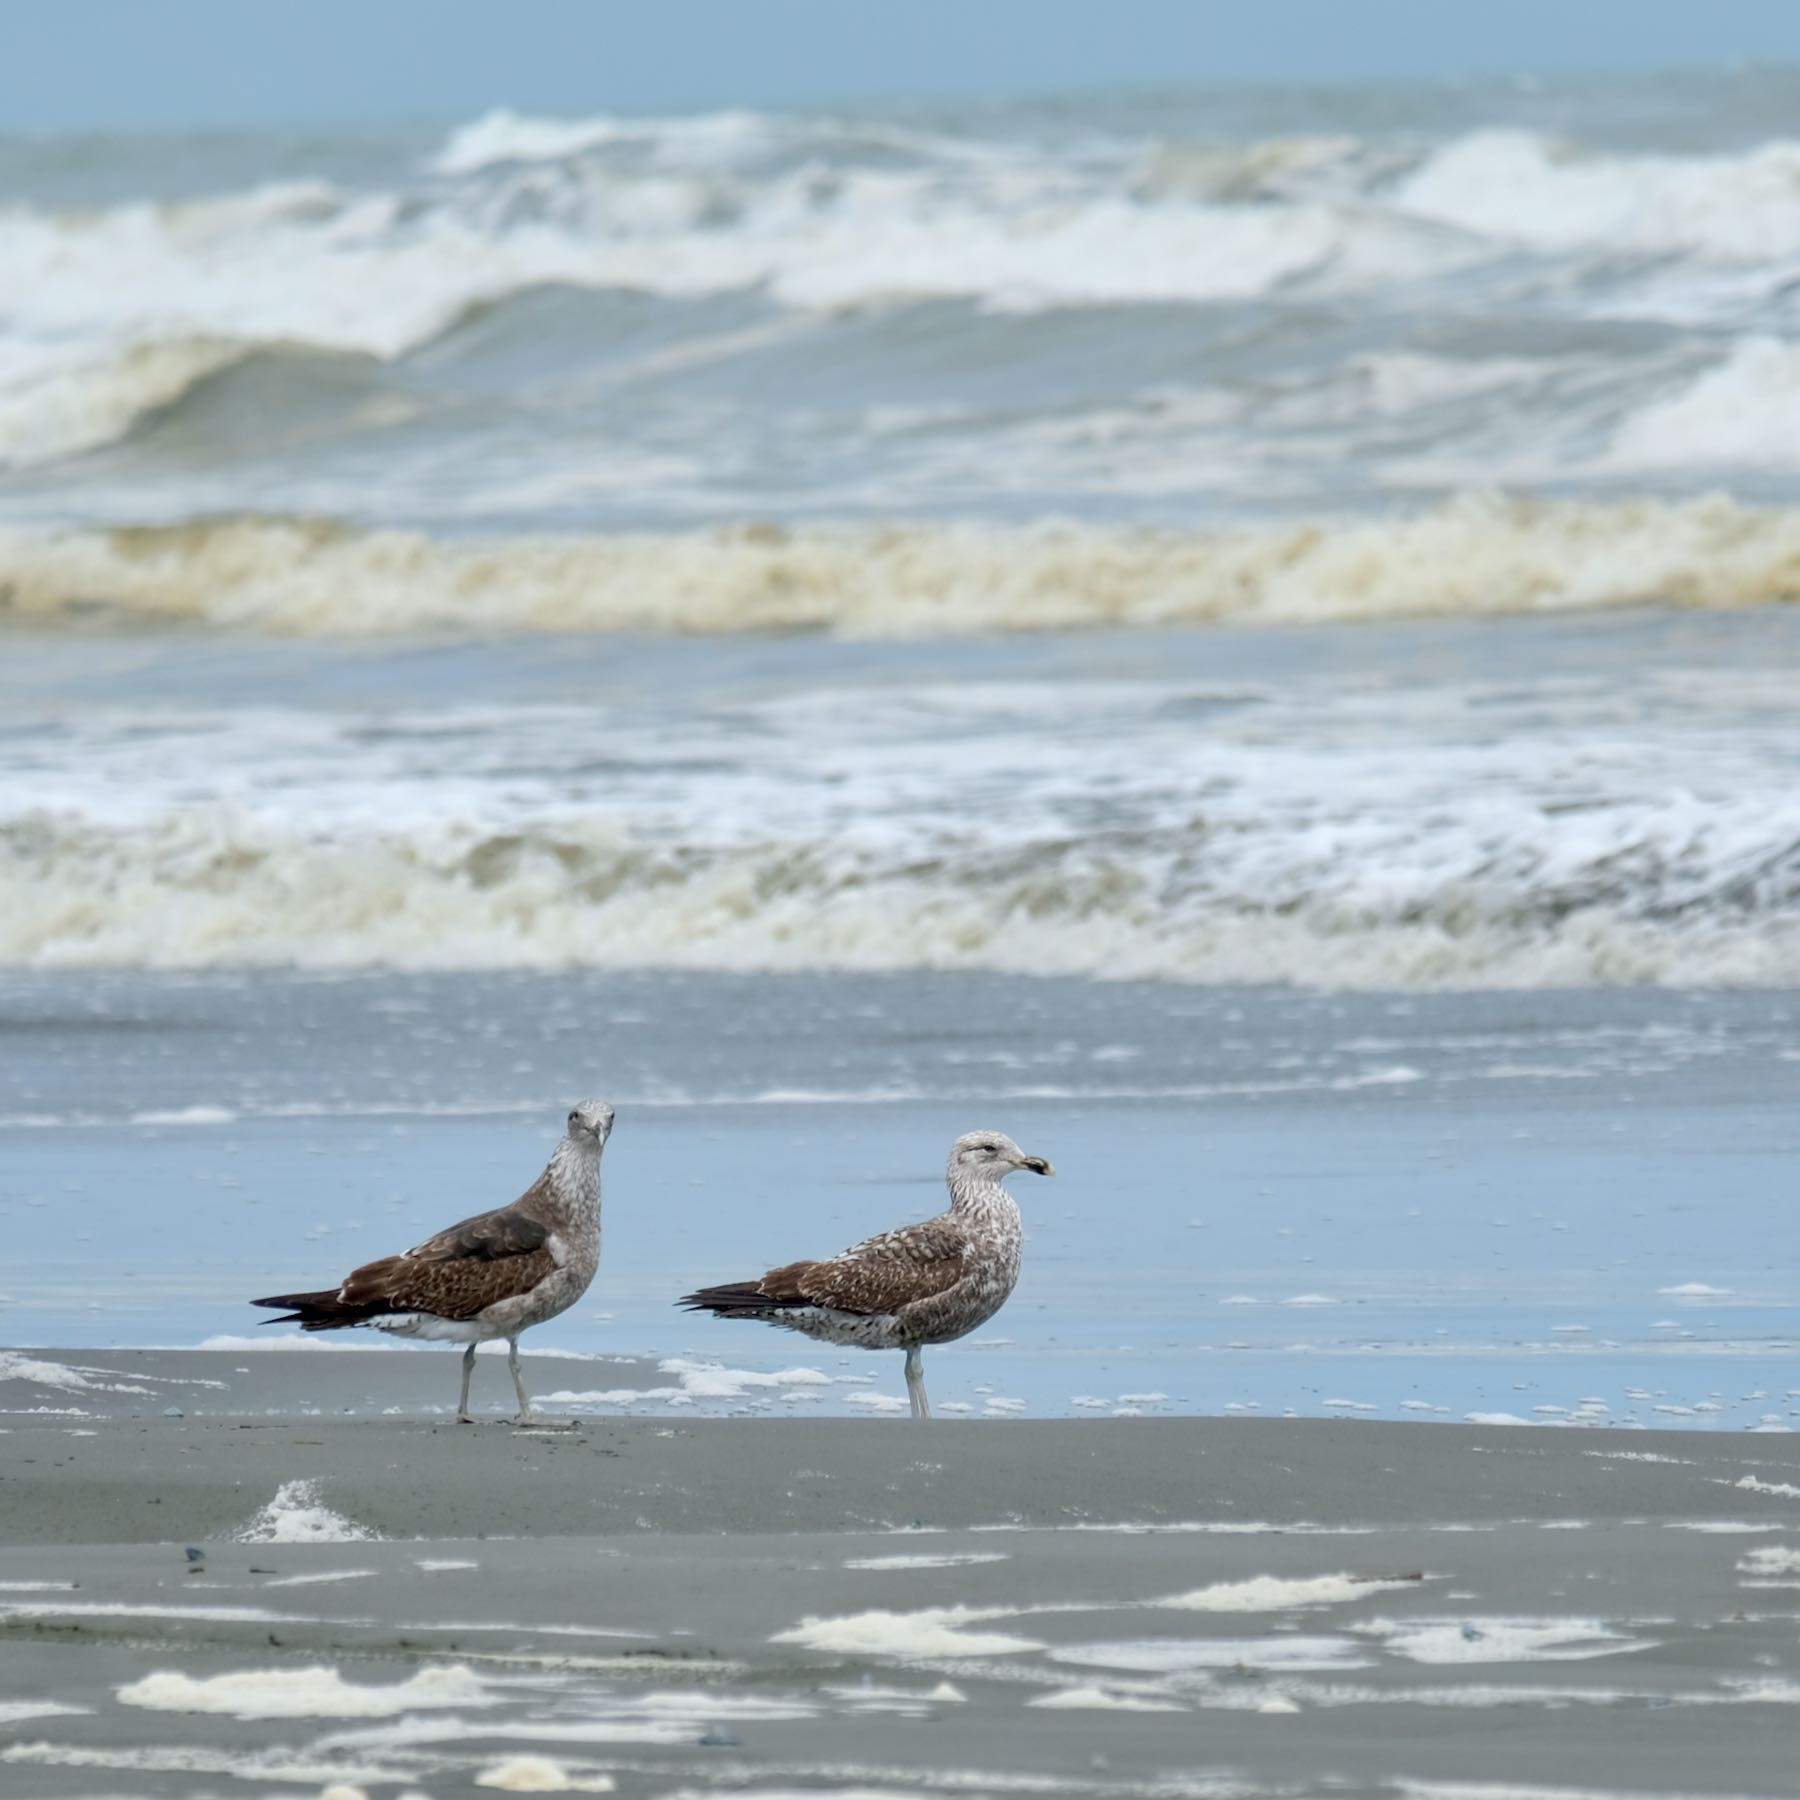 2 brown and spotted gulls at the water's edge on the beach.